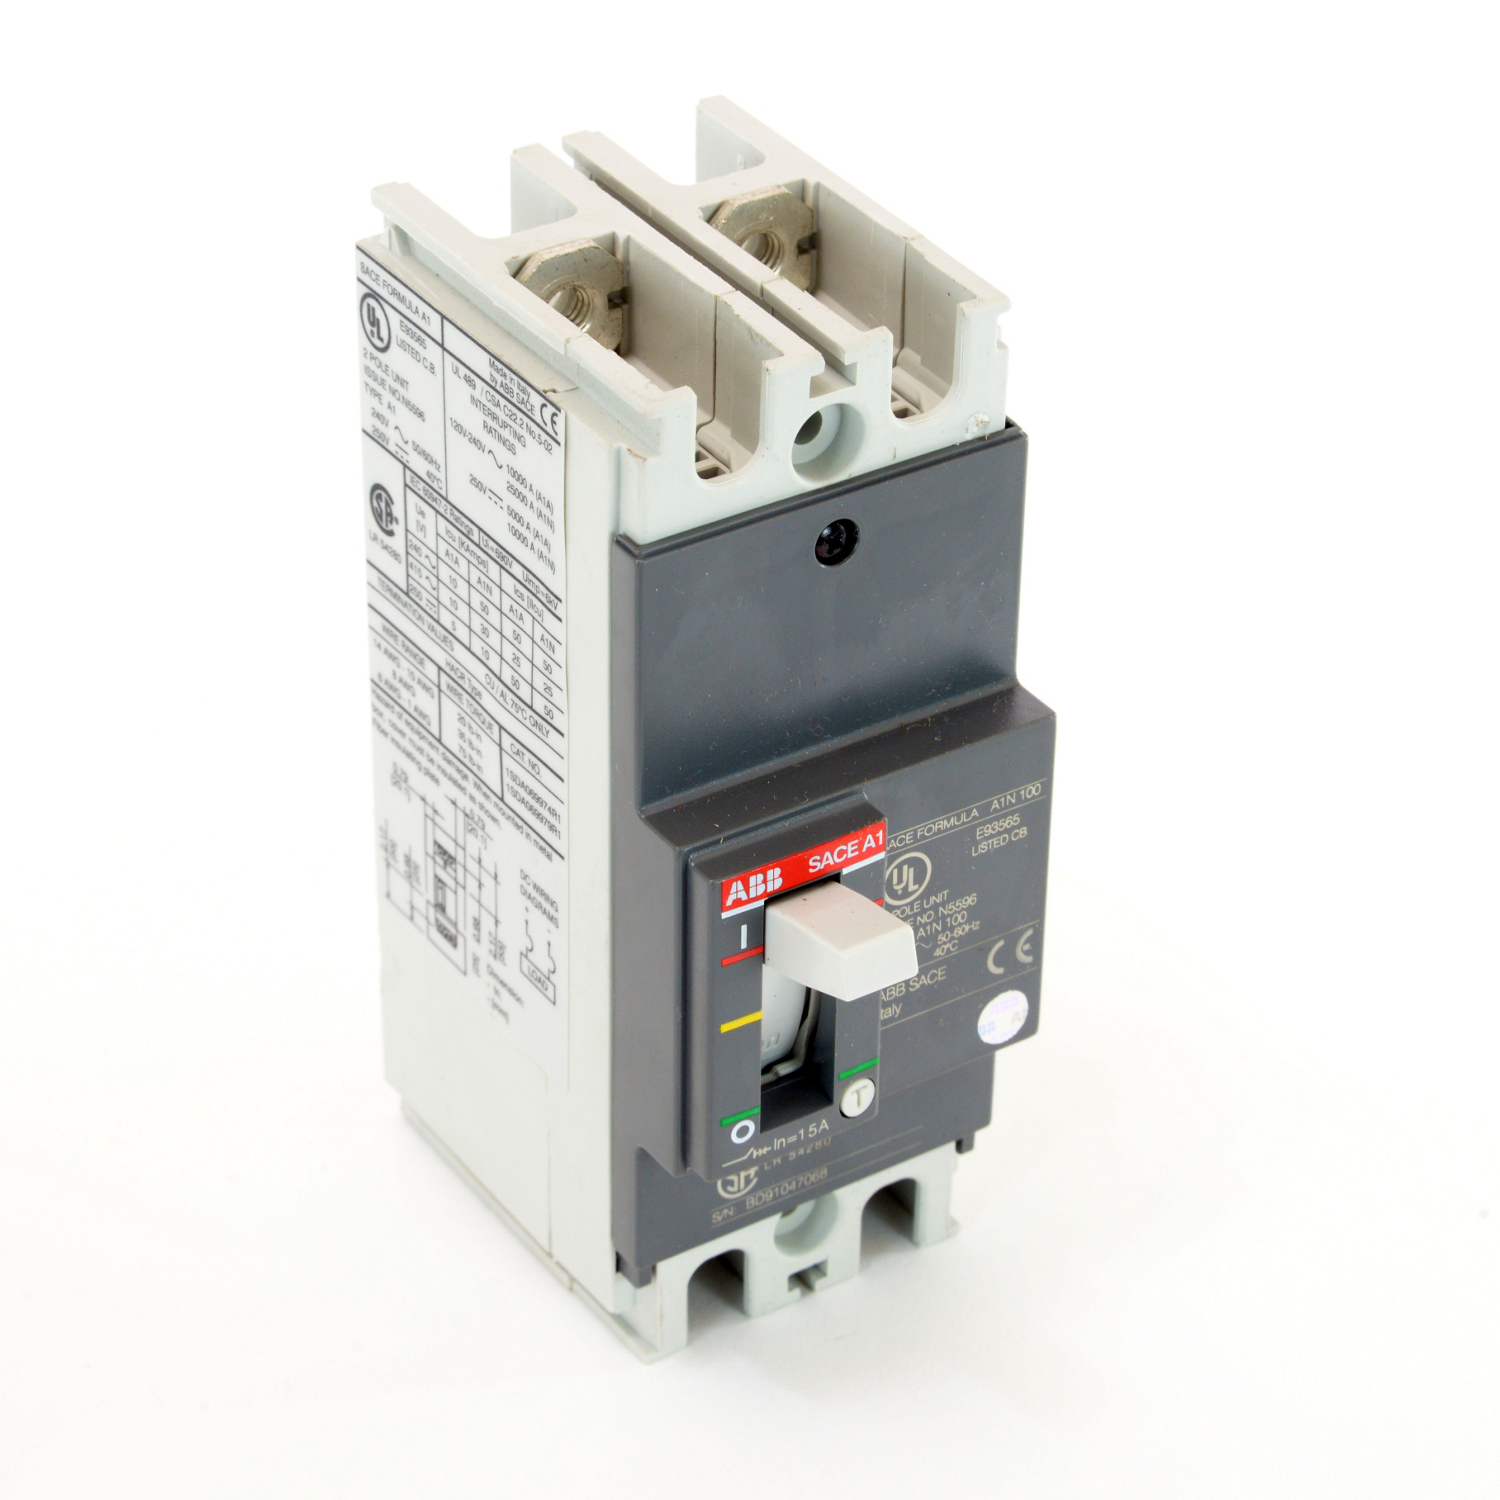 ABB A1N015TW-2 Molded Case Circuit Breakrs